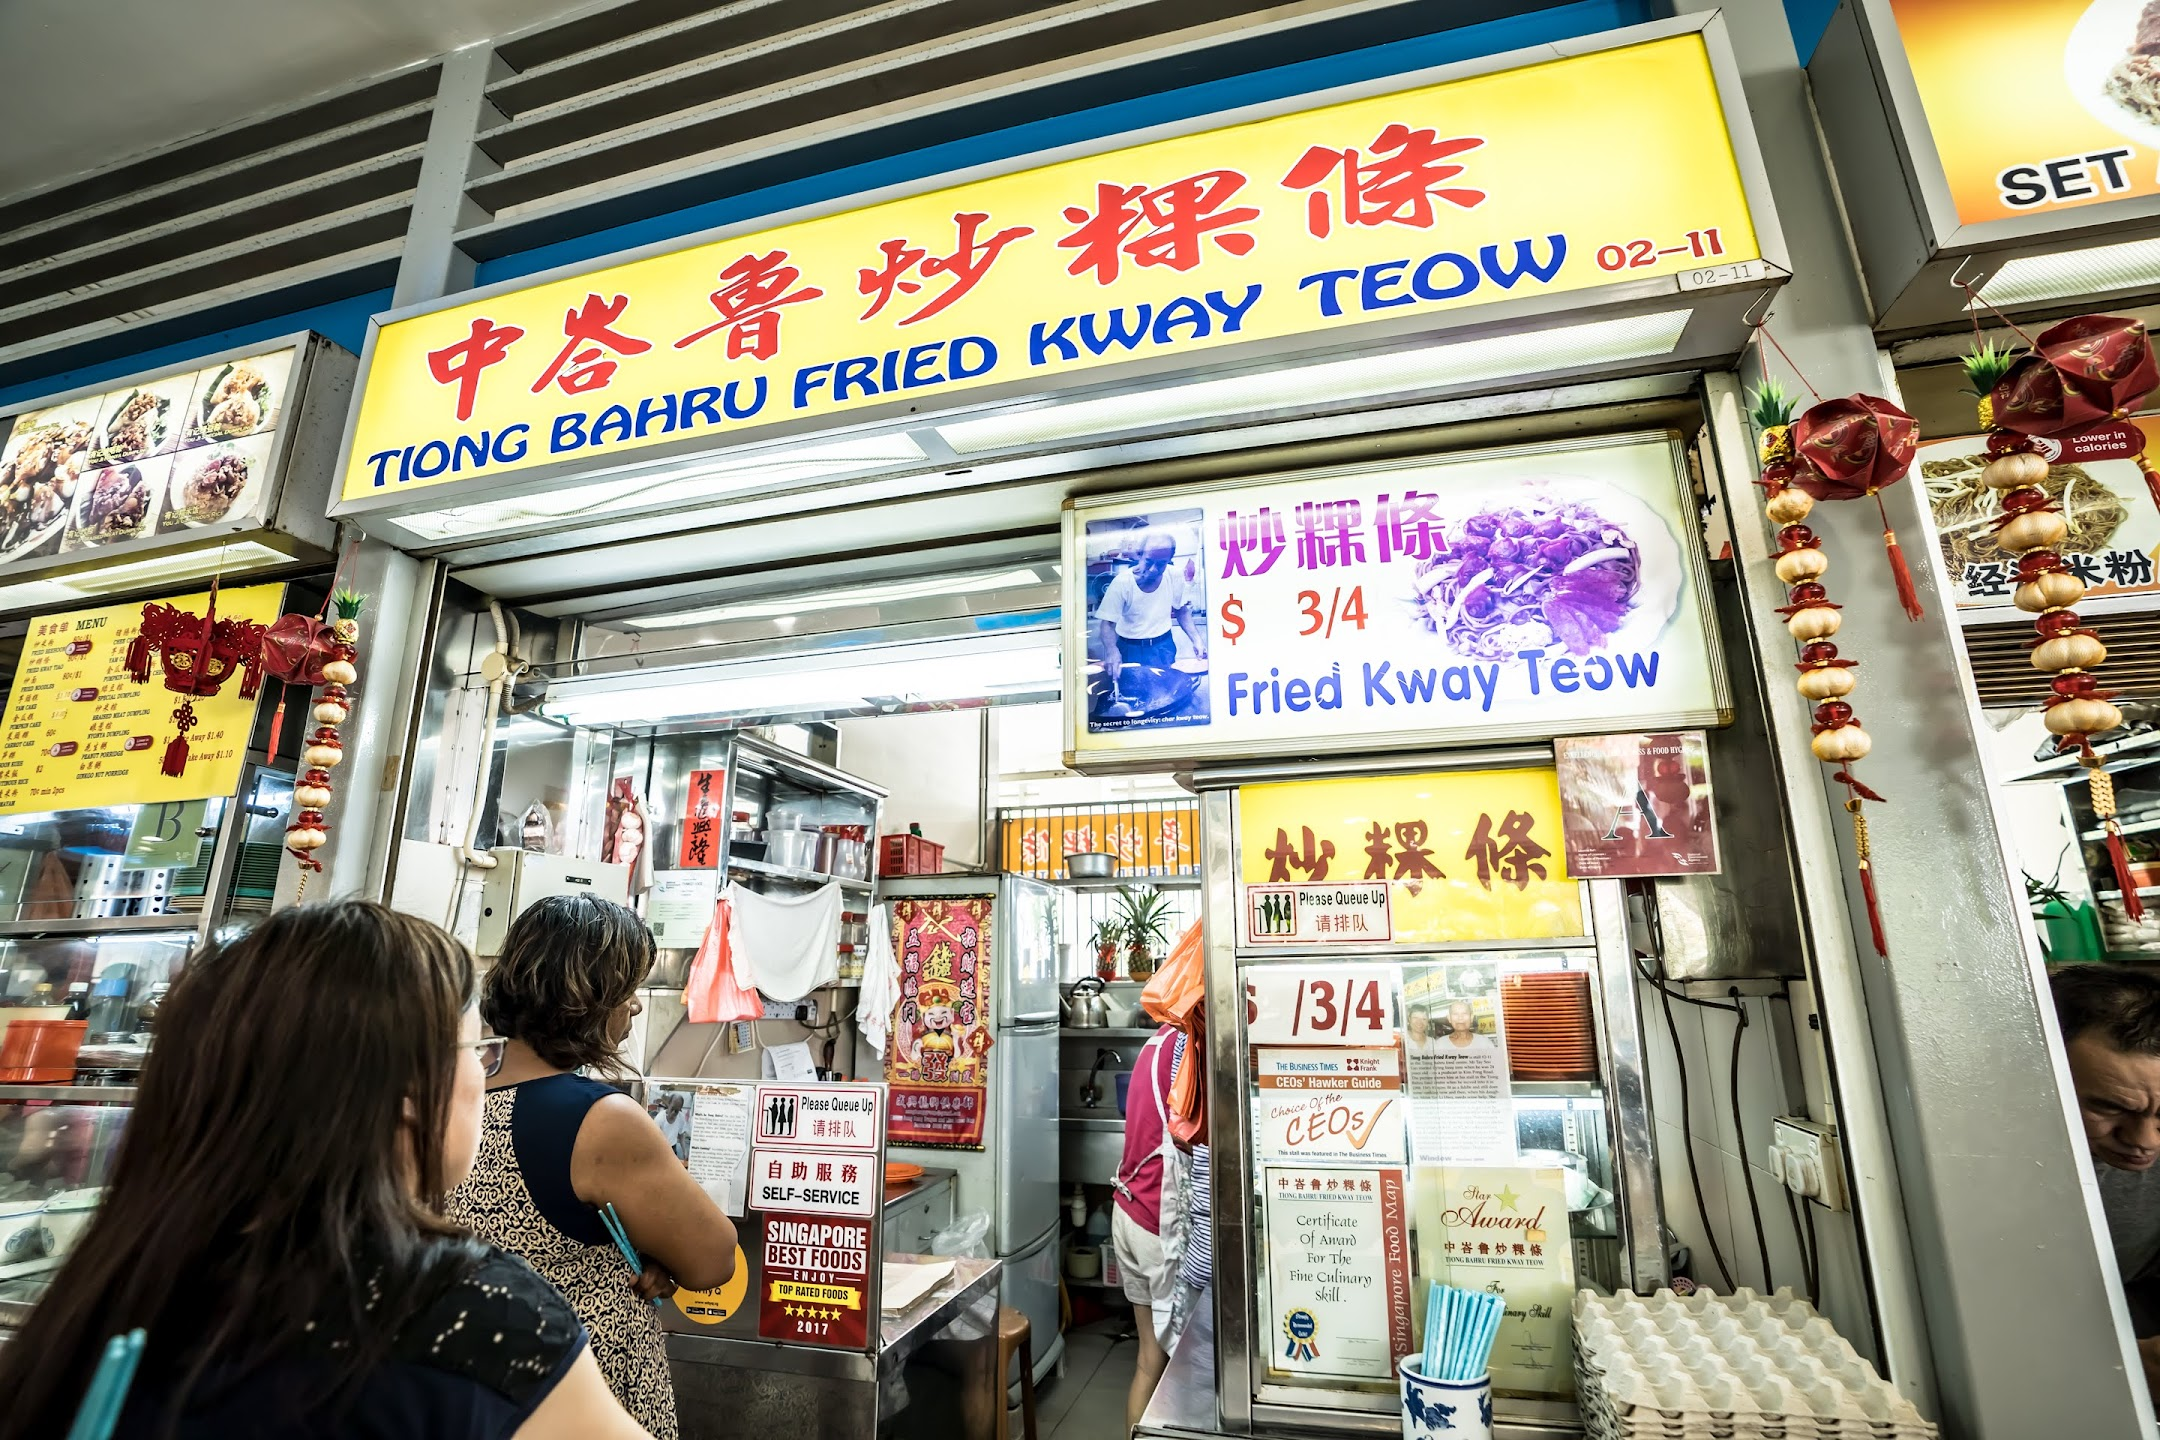 Singapore Tiong Bahru Fried Kway Teow